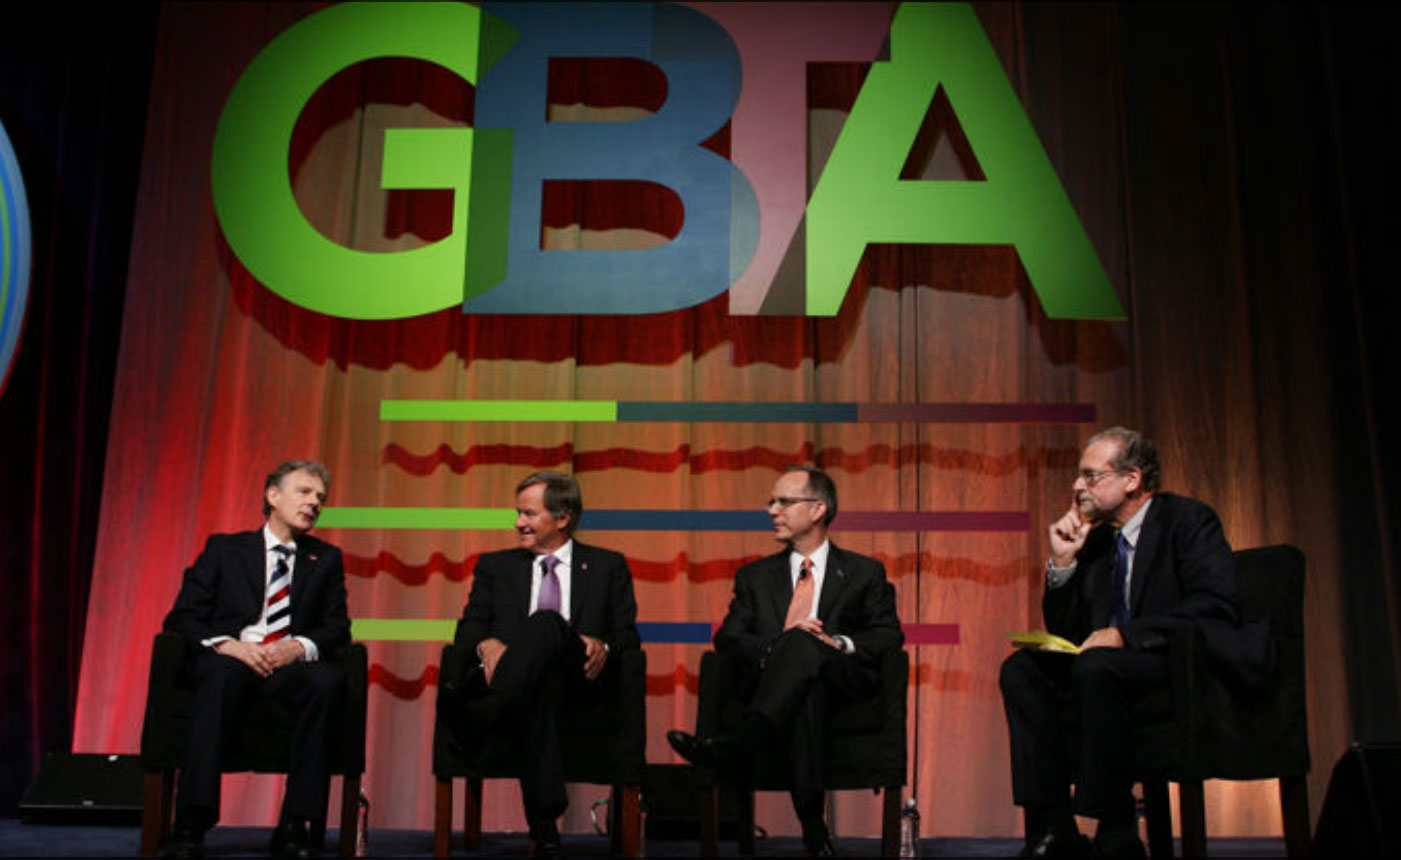 GBTA study finds business travel spending to grow globally.